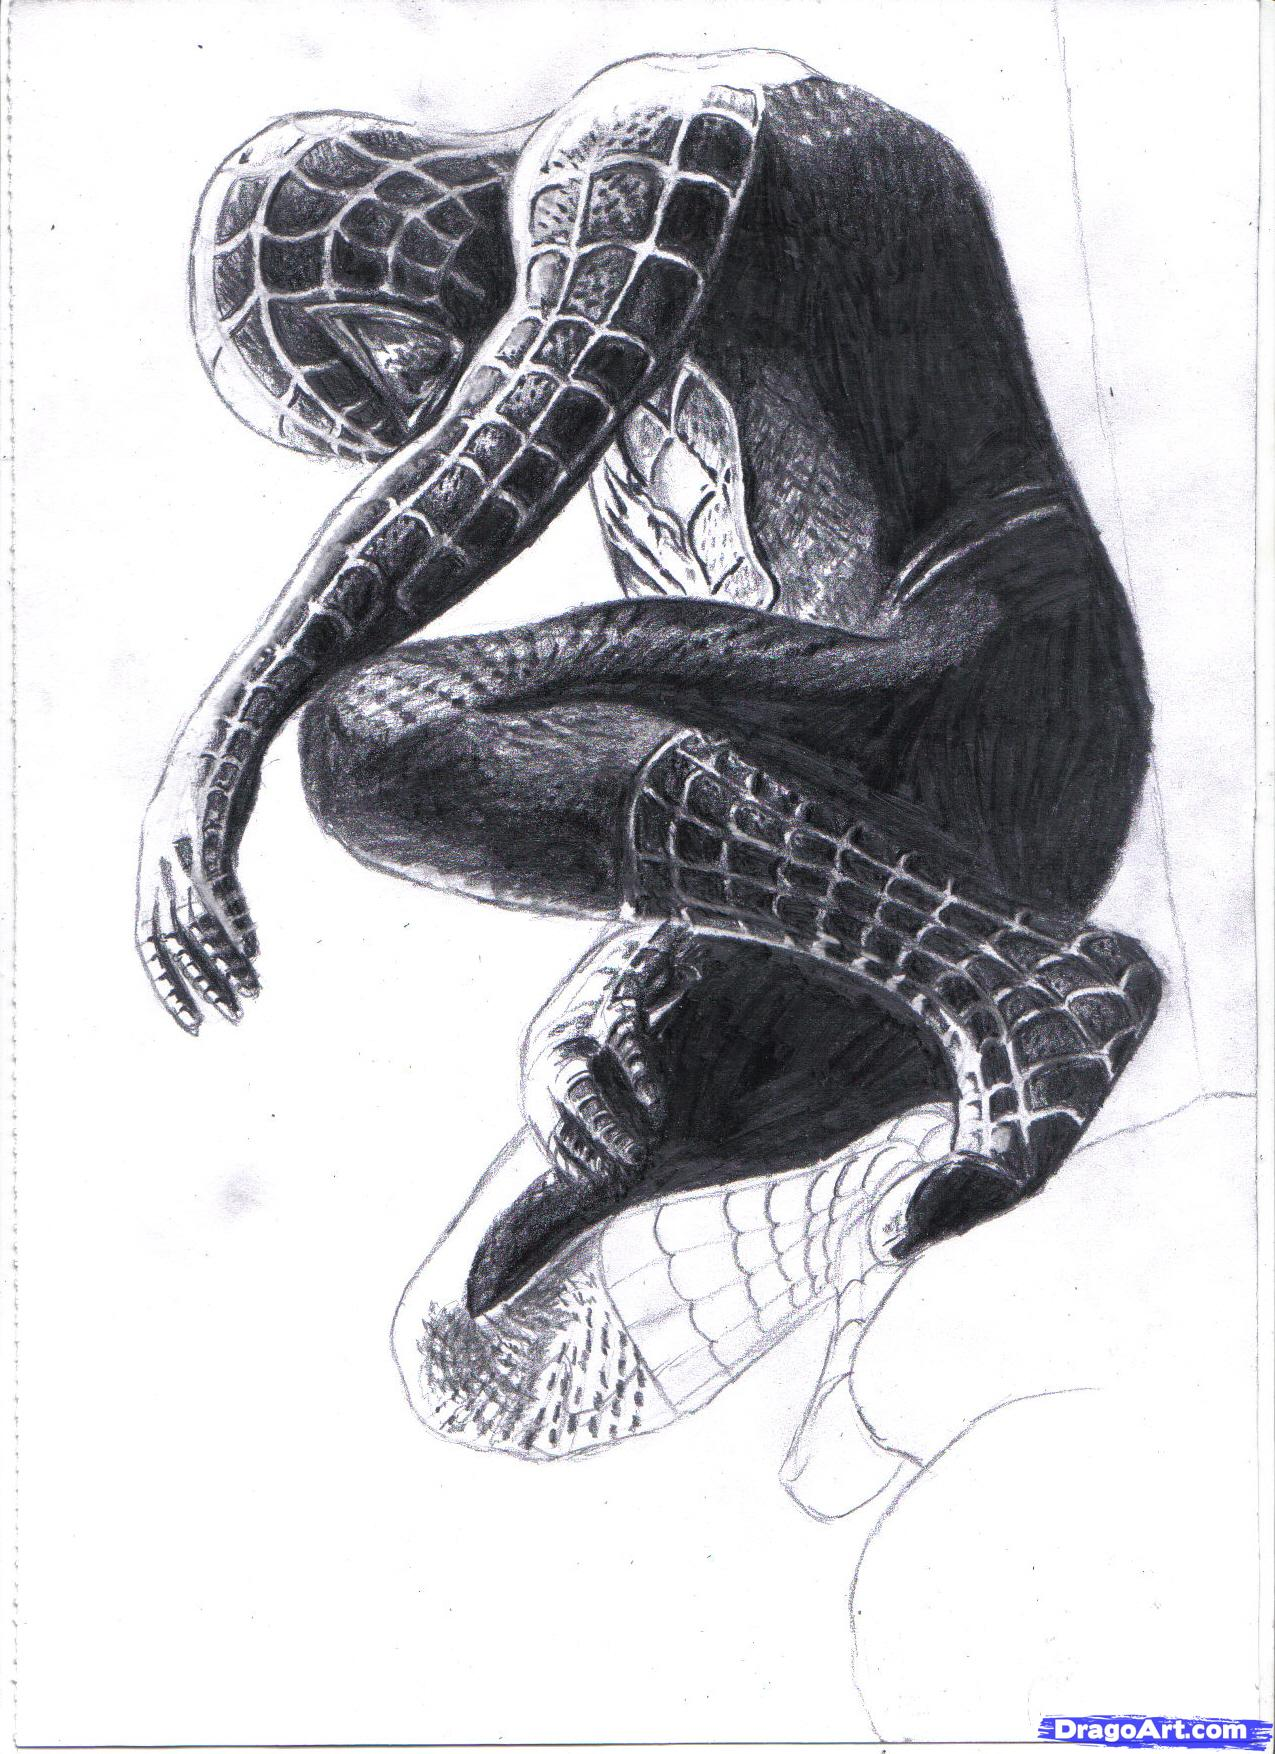 Drawn spider-man pencil drawing Pinterest Drawing how Best